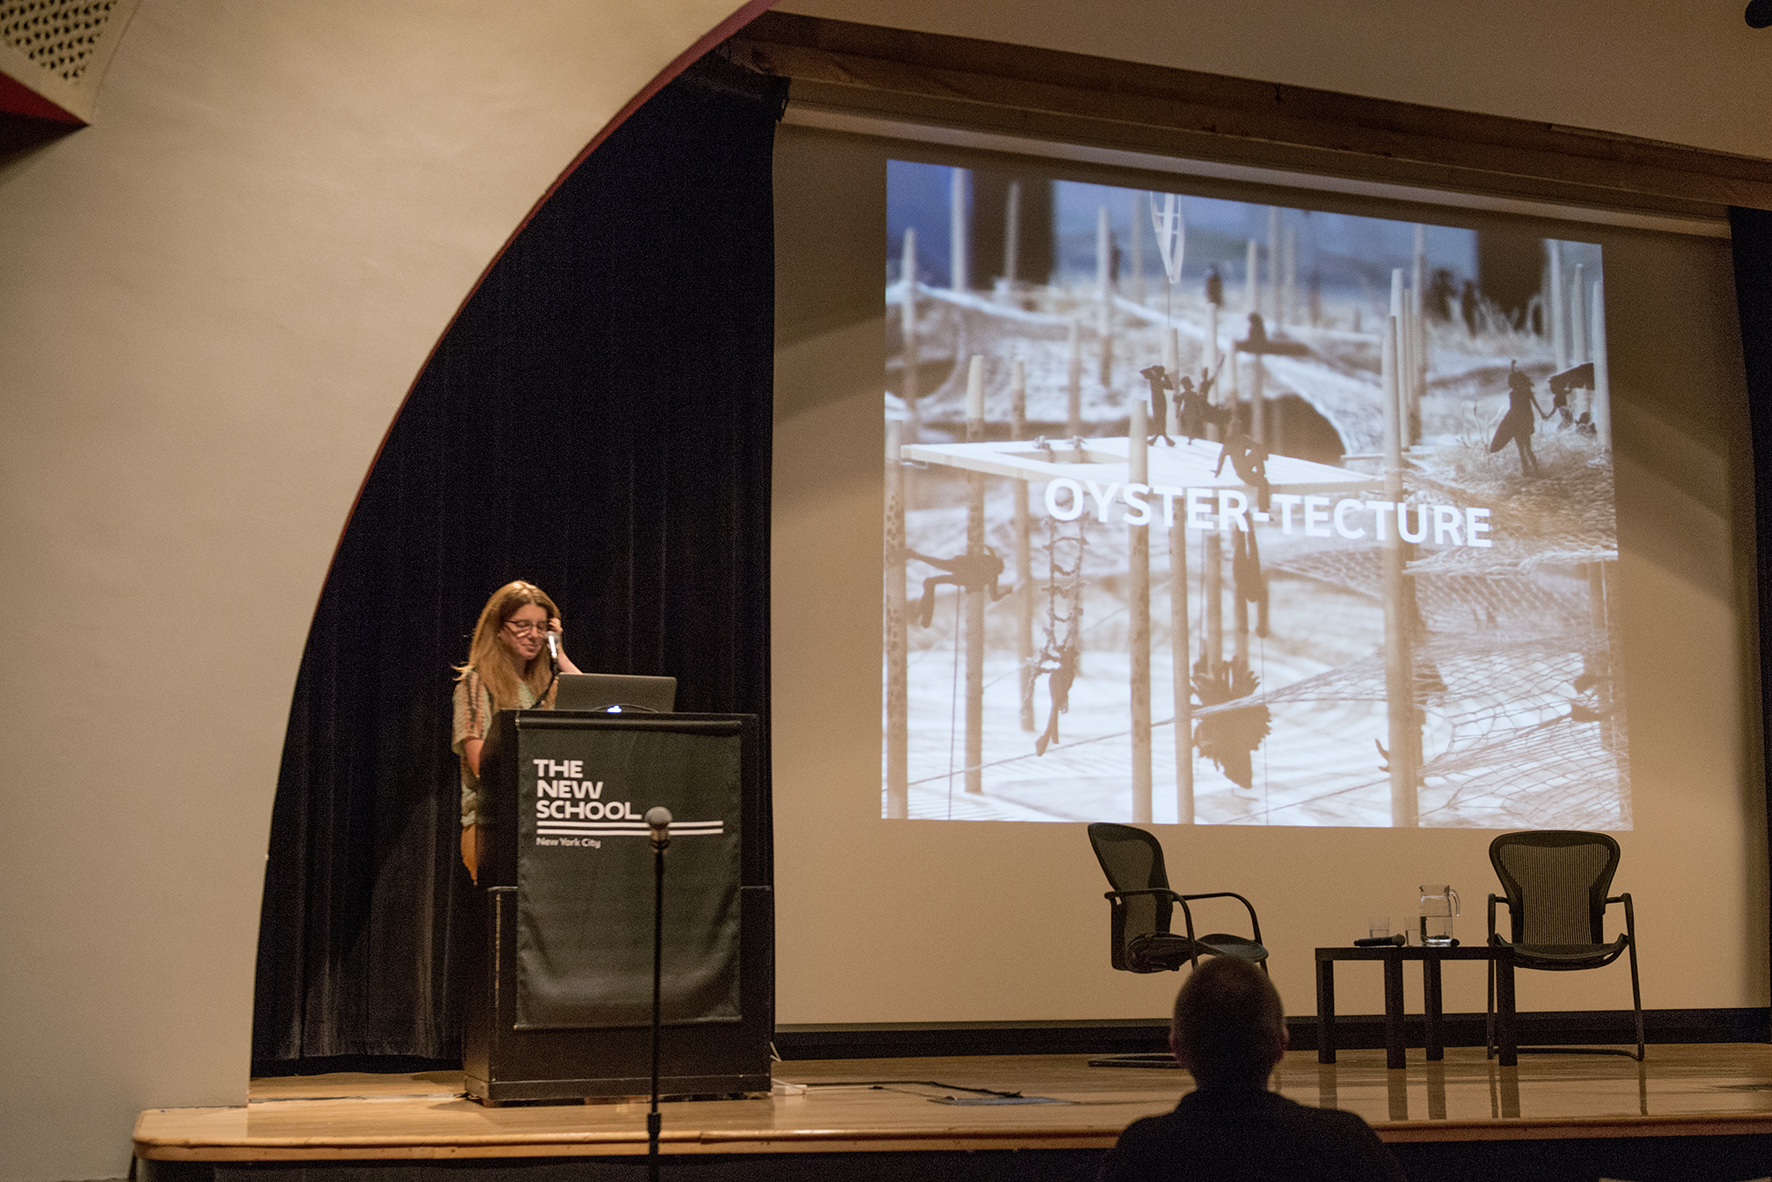 Gena Wirth of the SCAPE Studio, giving her presentation  Approaching Urban Nature , as part of  Urban Nature Symposium  in October 2015.